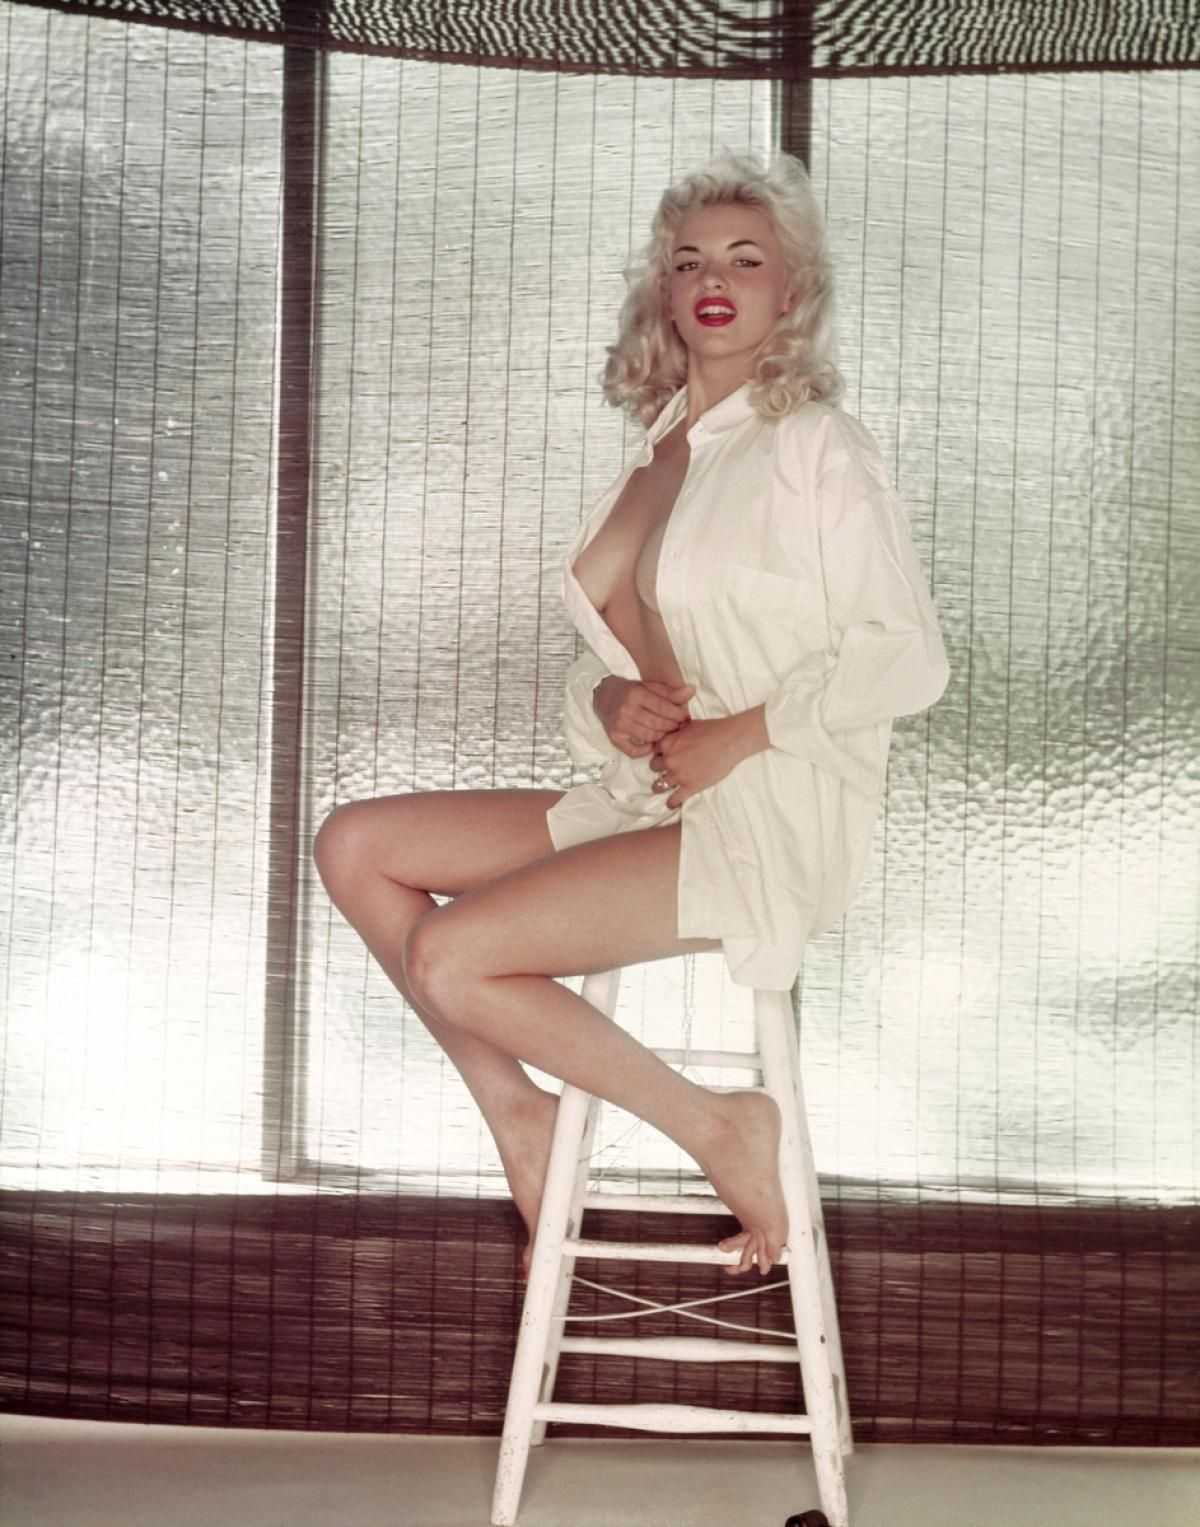 Jayne mansfield nude photos classic shall agree